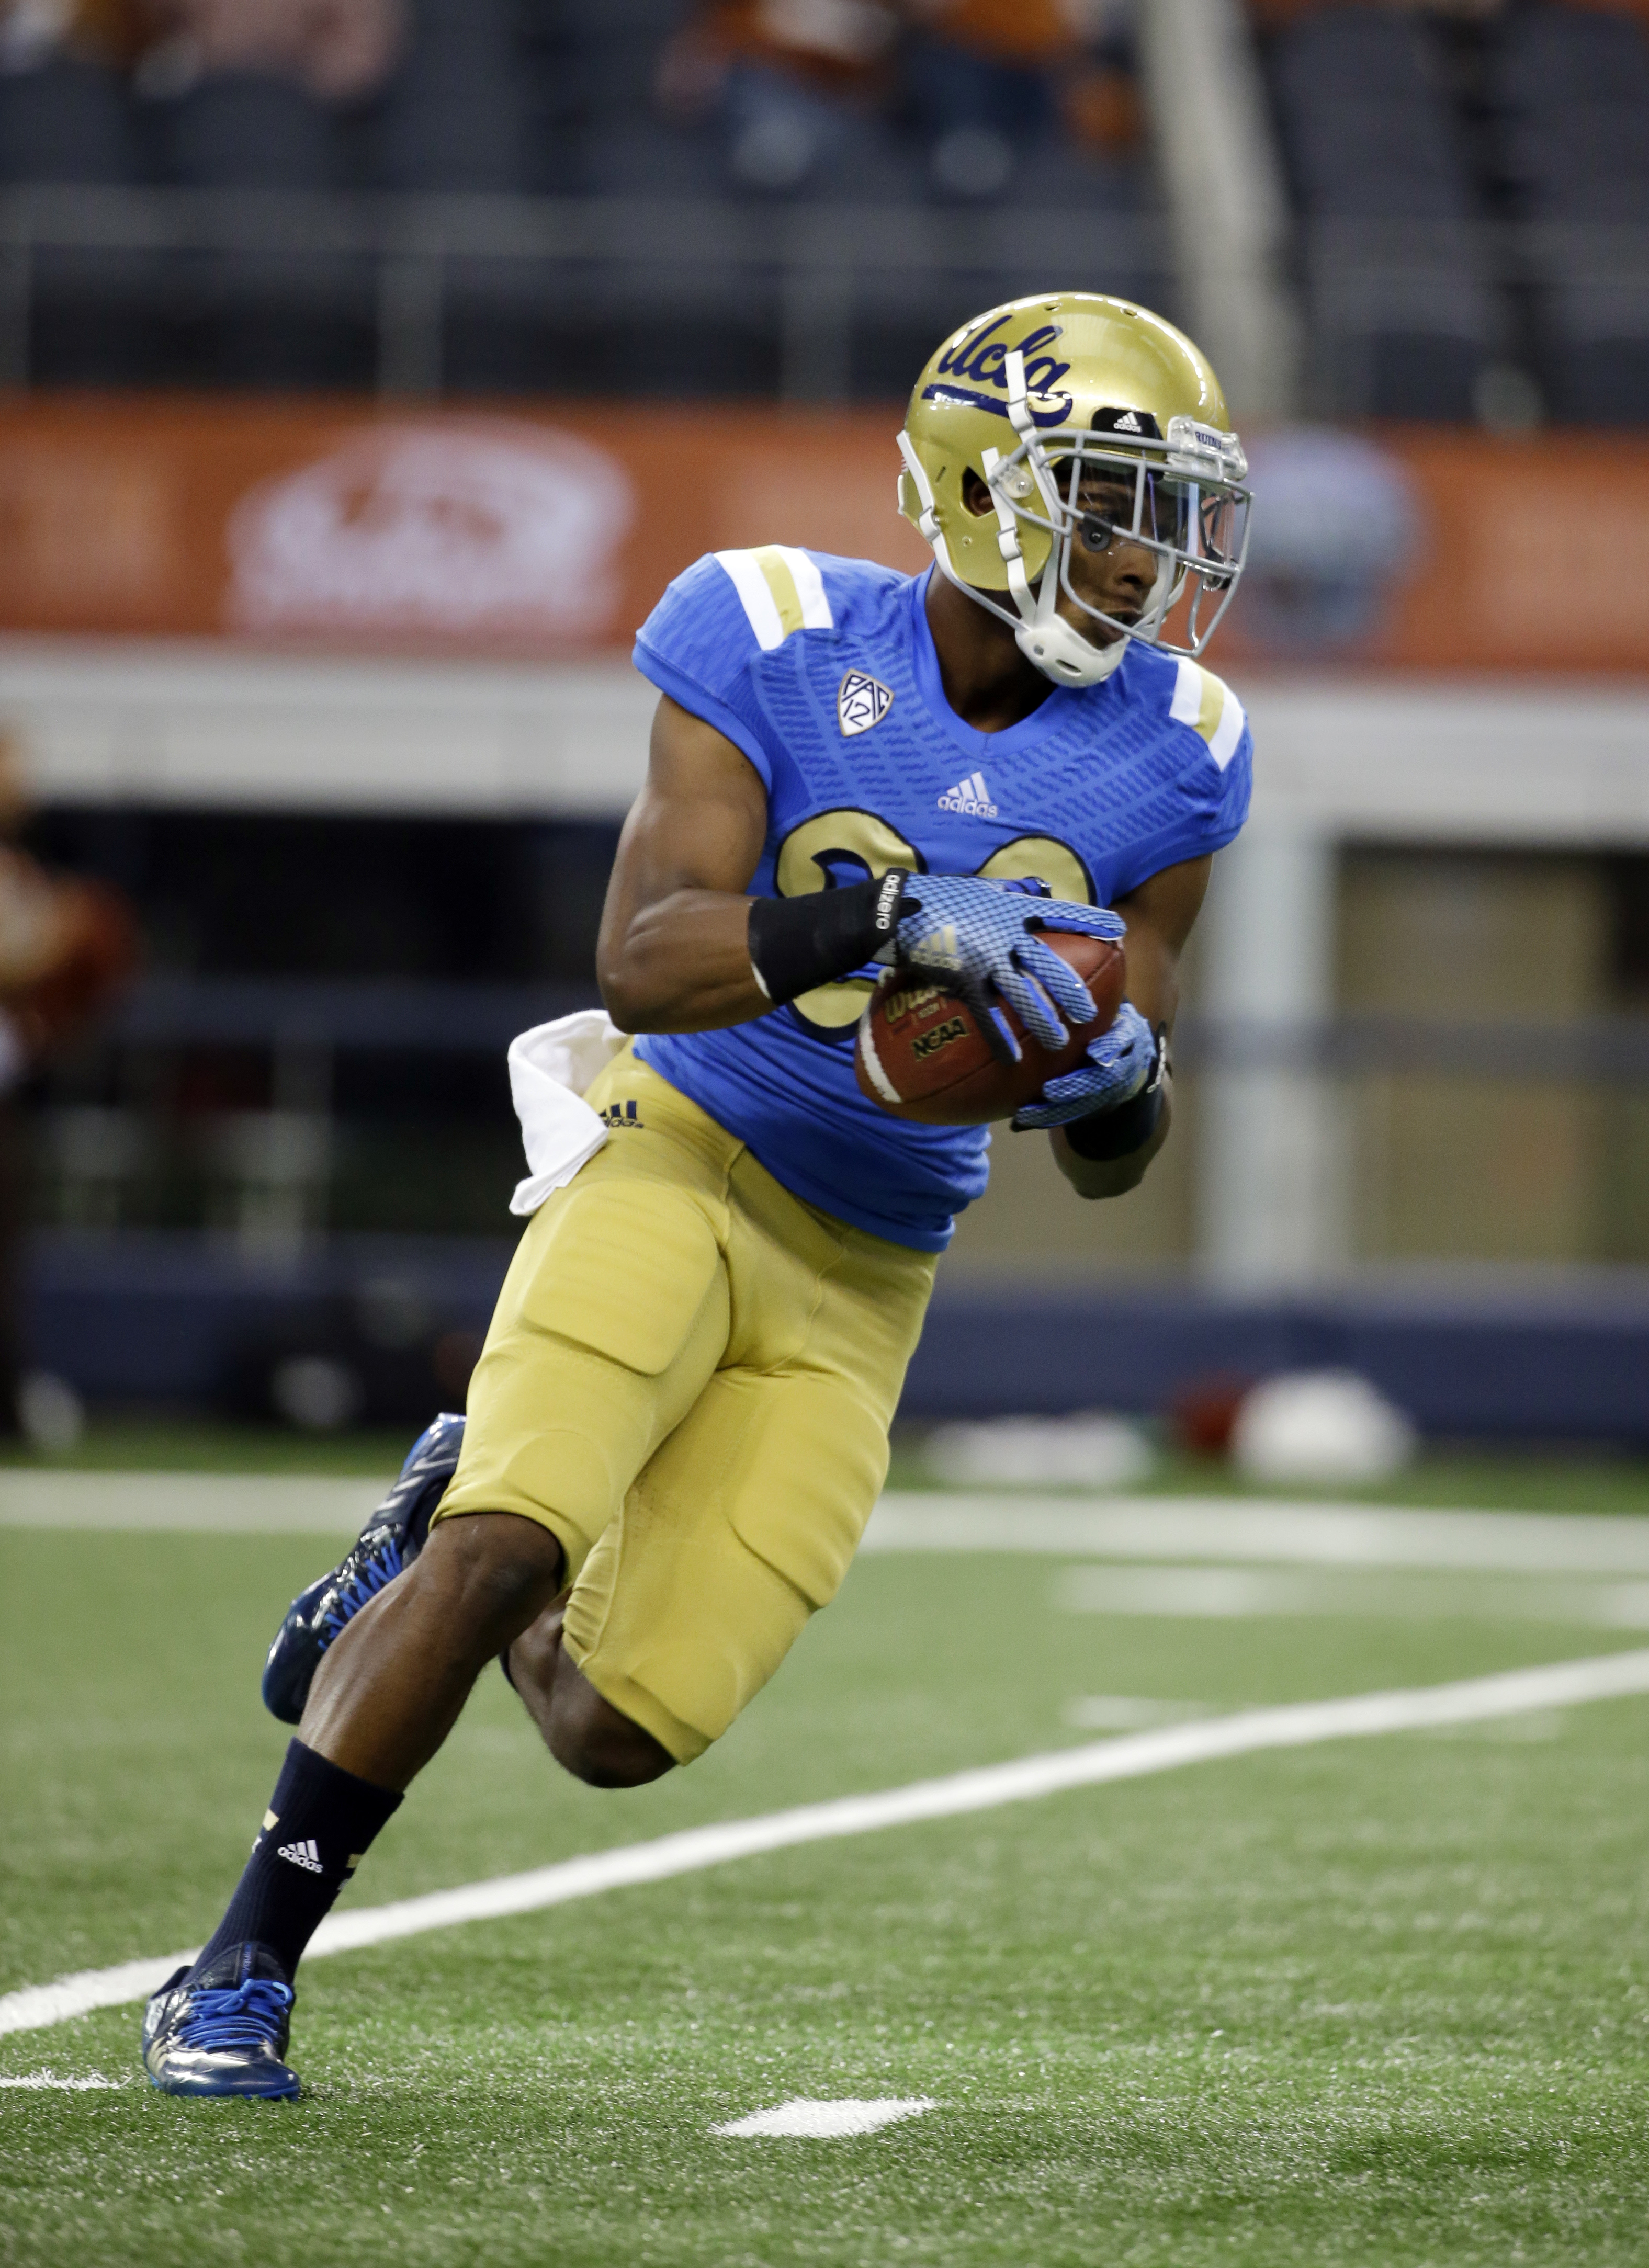 UCLA defensive back Justin Combs carries the ball after grabbing a pass during warm ups before an NCAA college football game against Texas, Saturday, Sept. 13, 2014, in Arlington, Texas. (AP Photo/Tony Gutierrez)